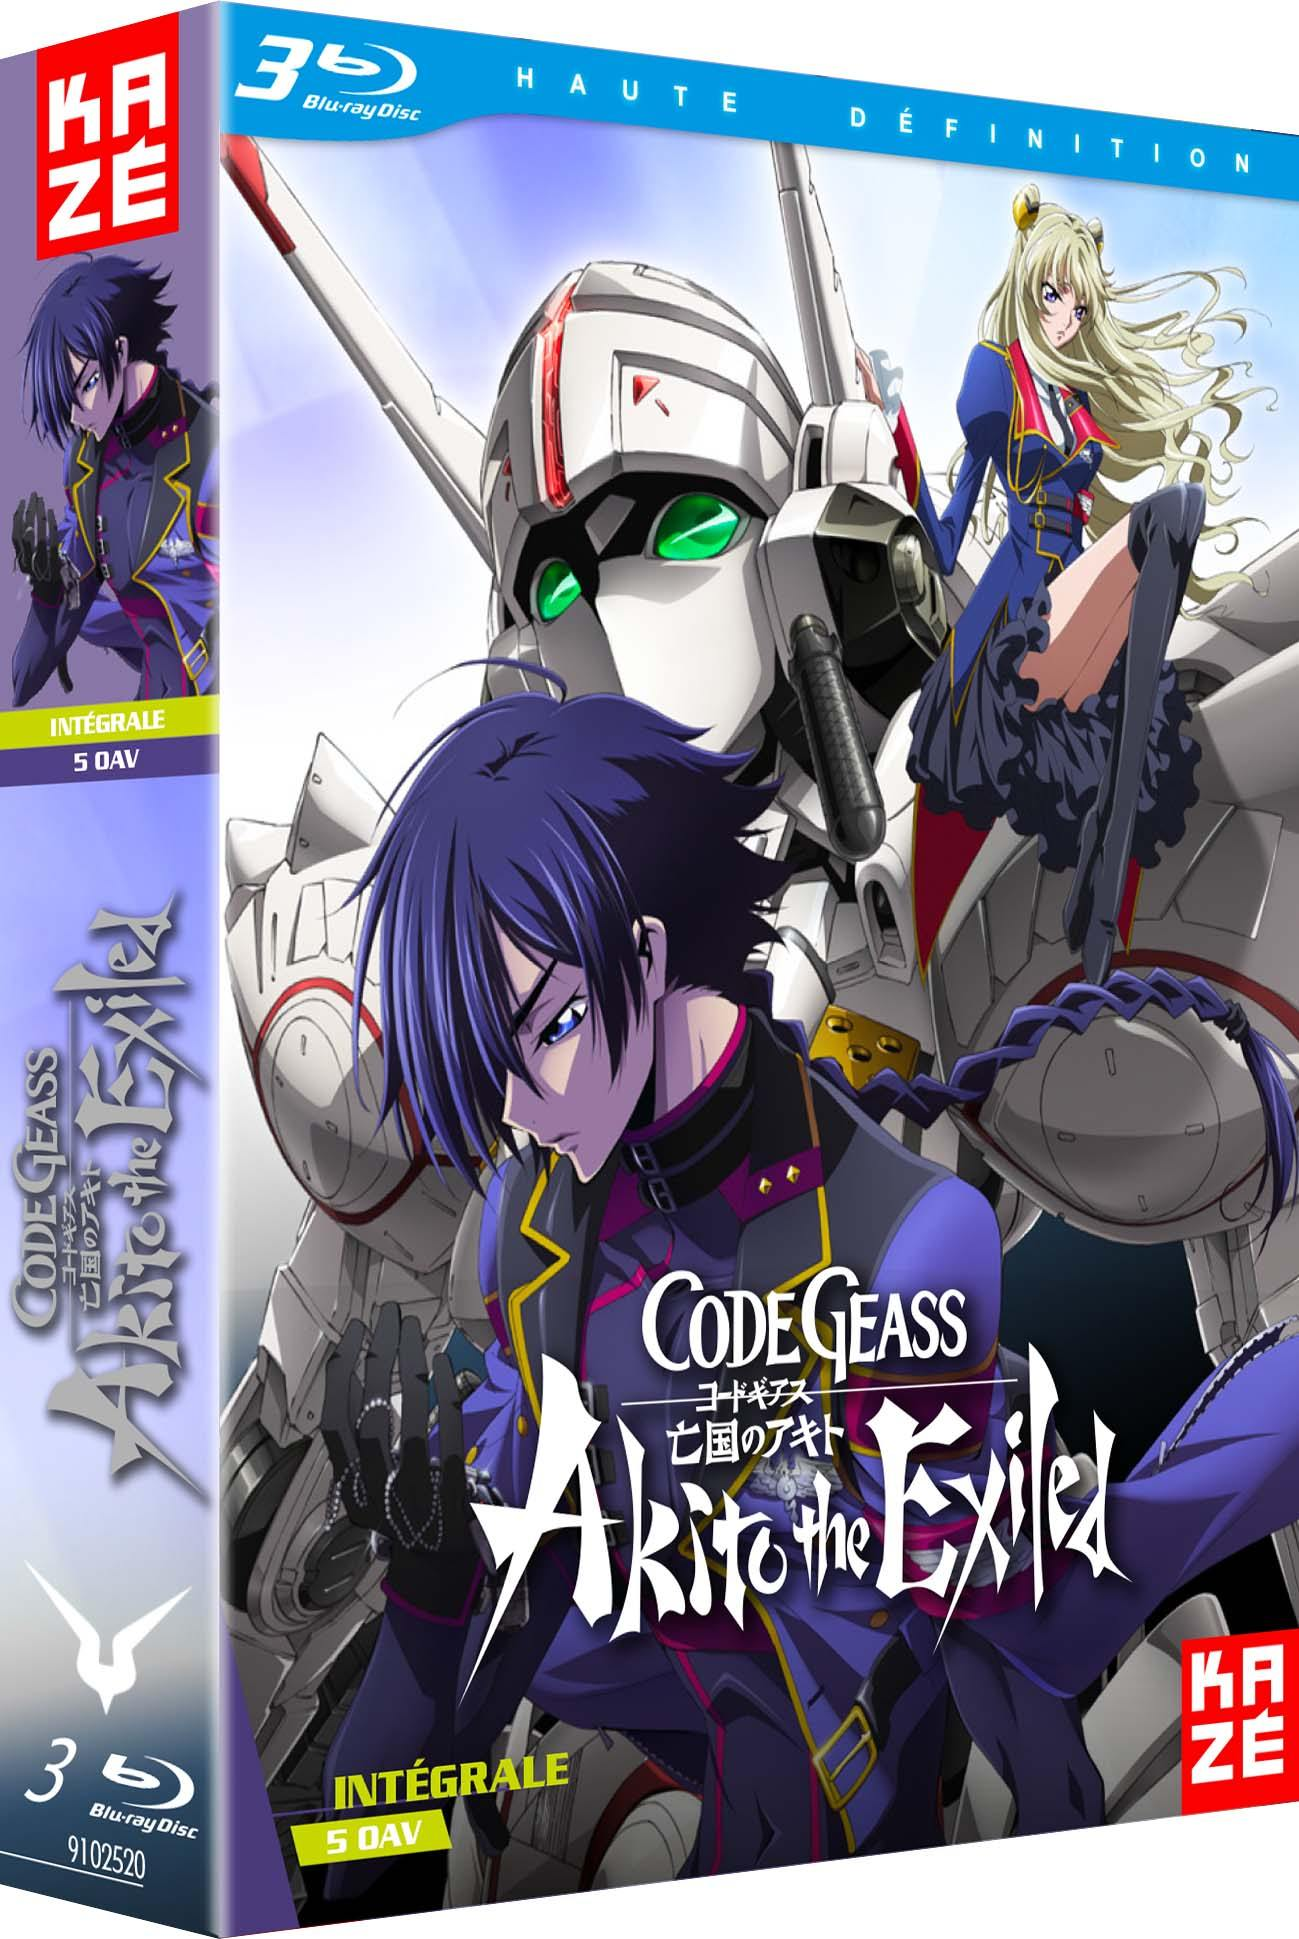 Code geass akito - the exiled - integrale 5 oav - 3 blu-ray